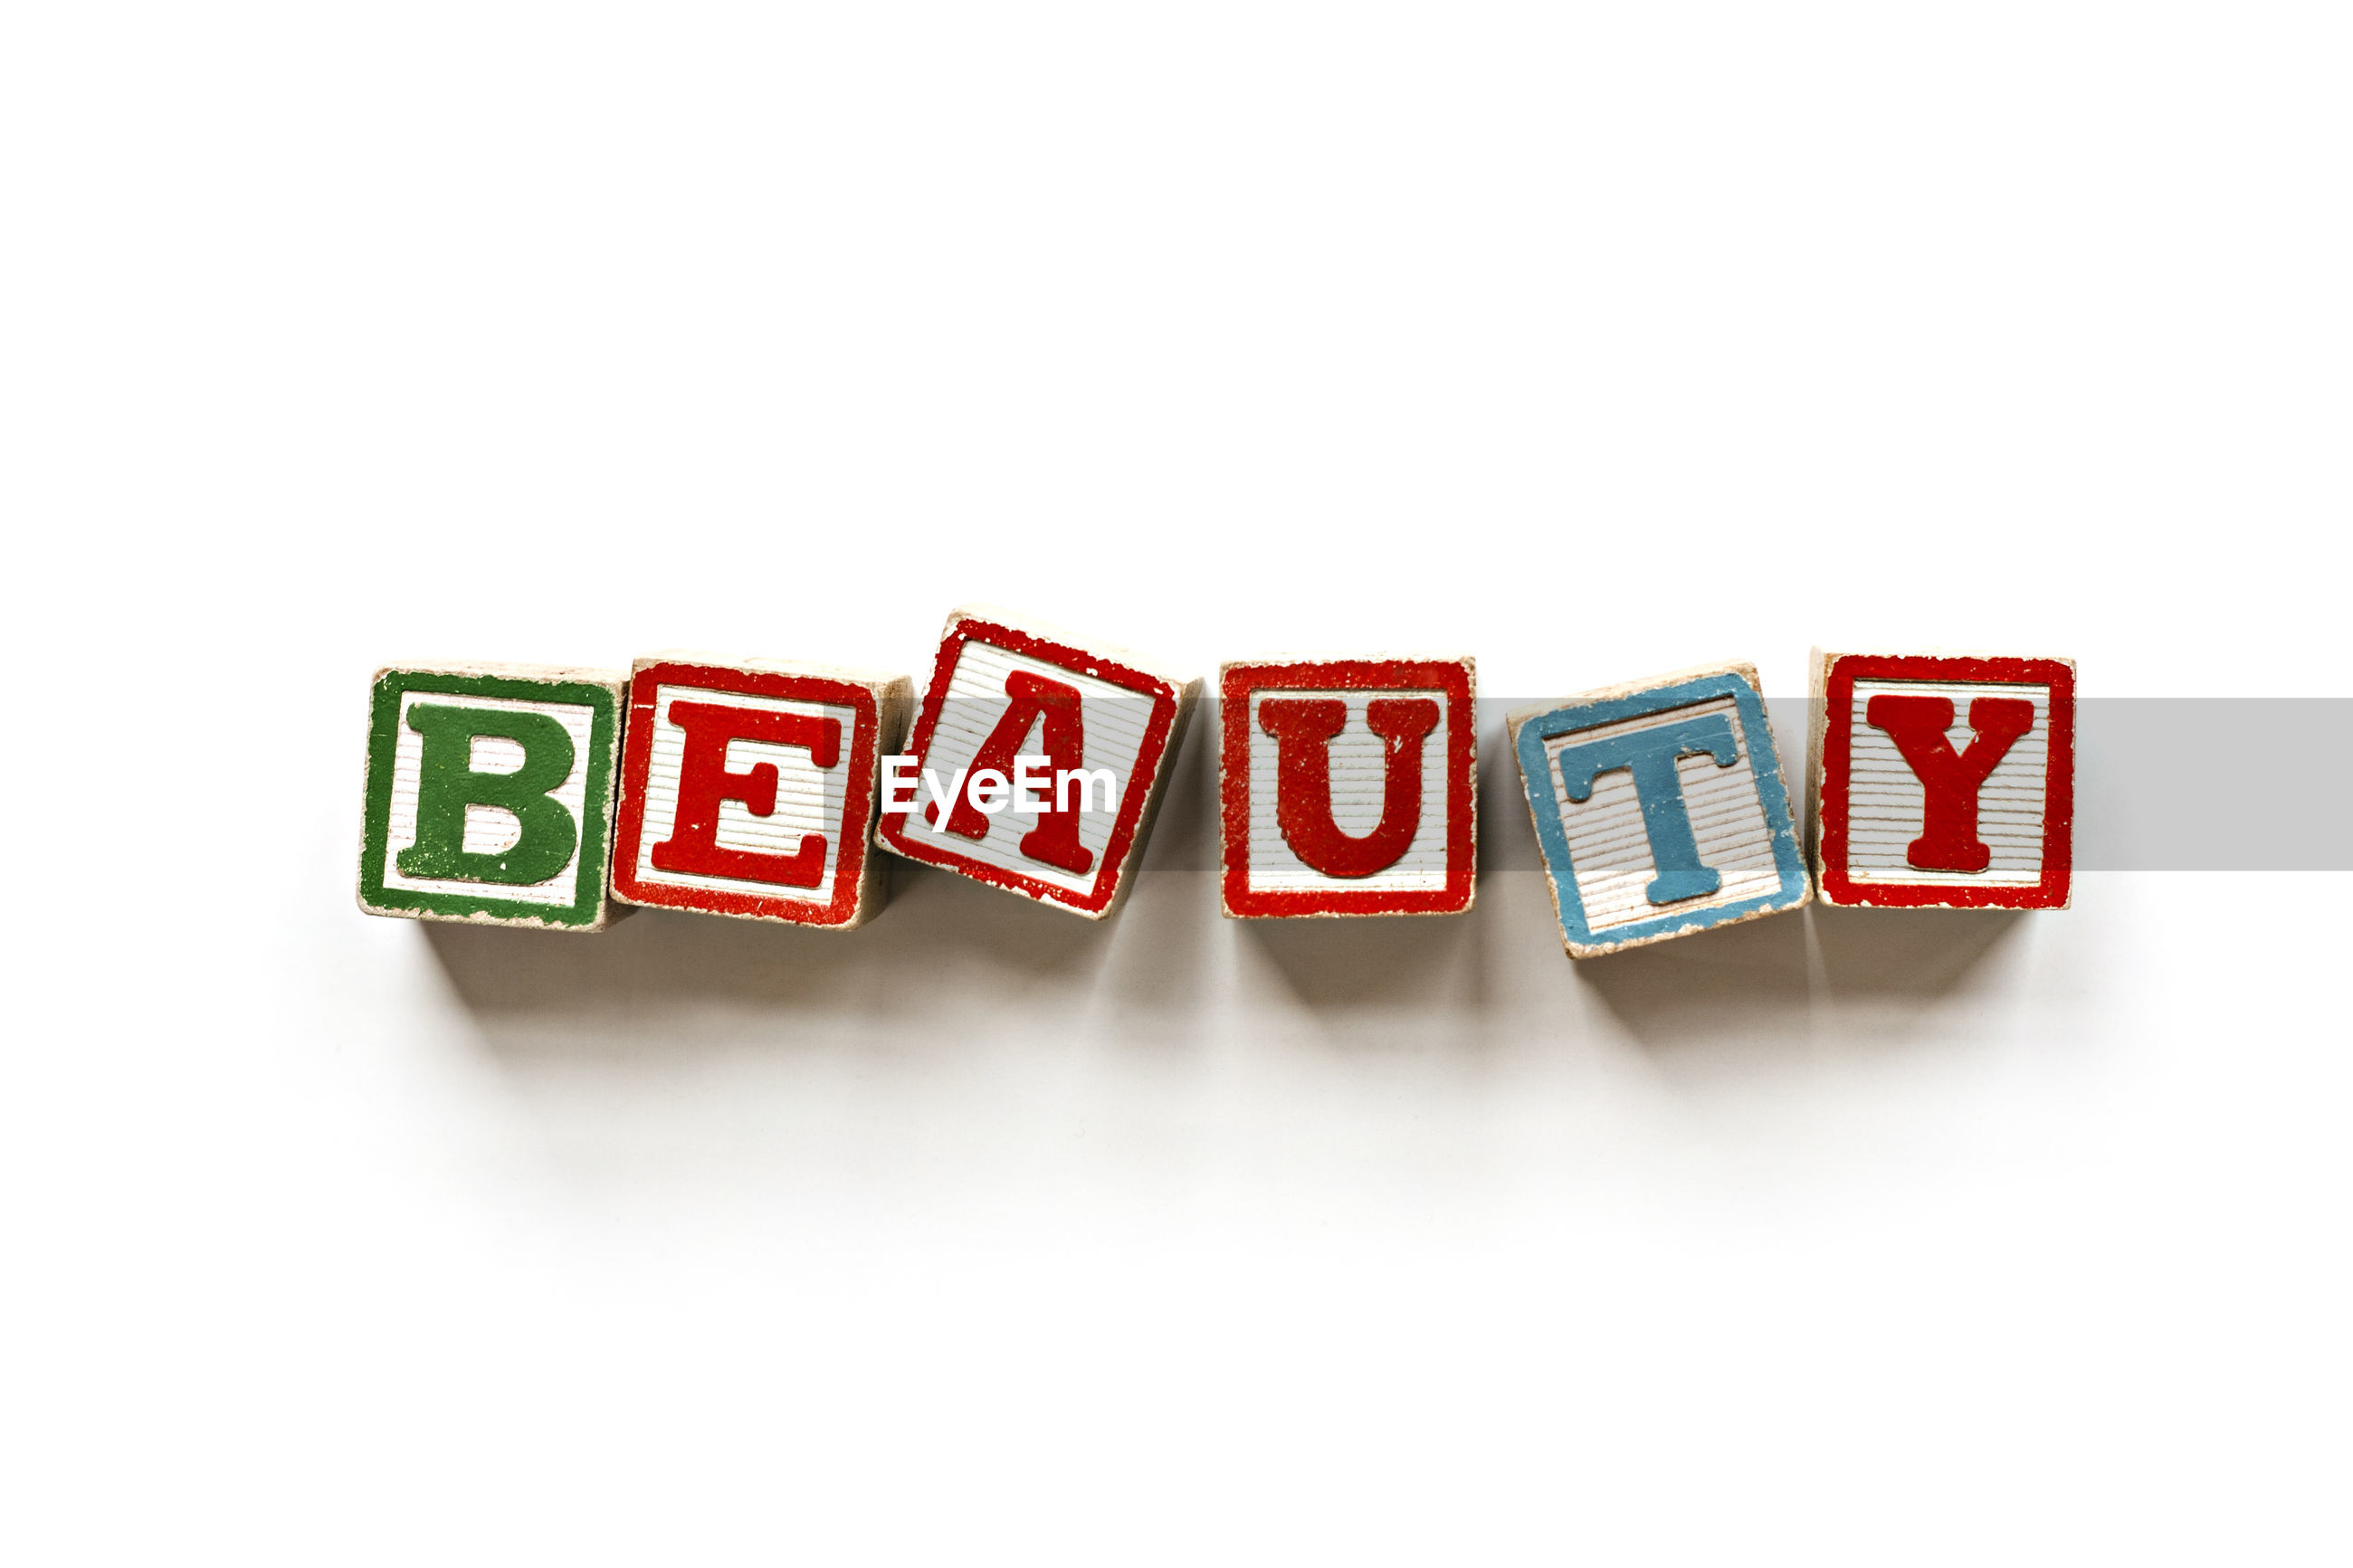 Beauty text blocks on white background